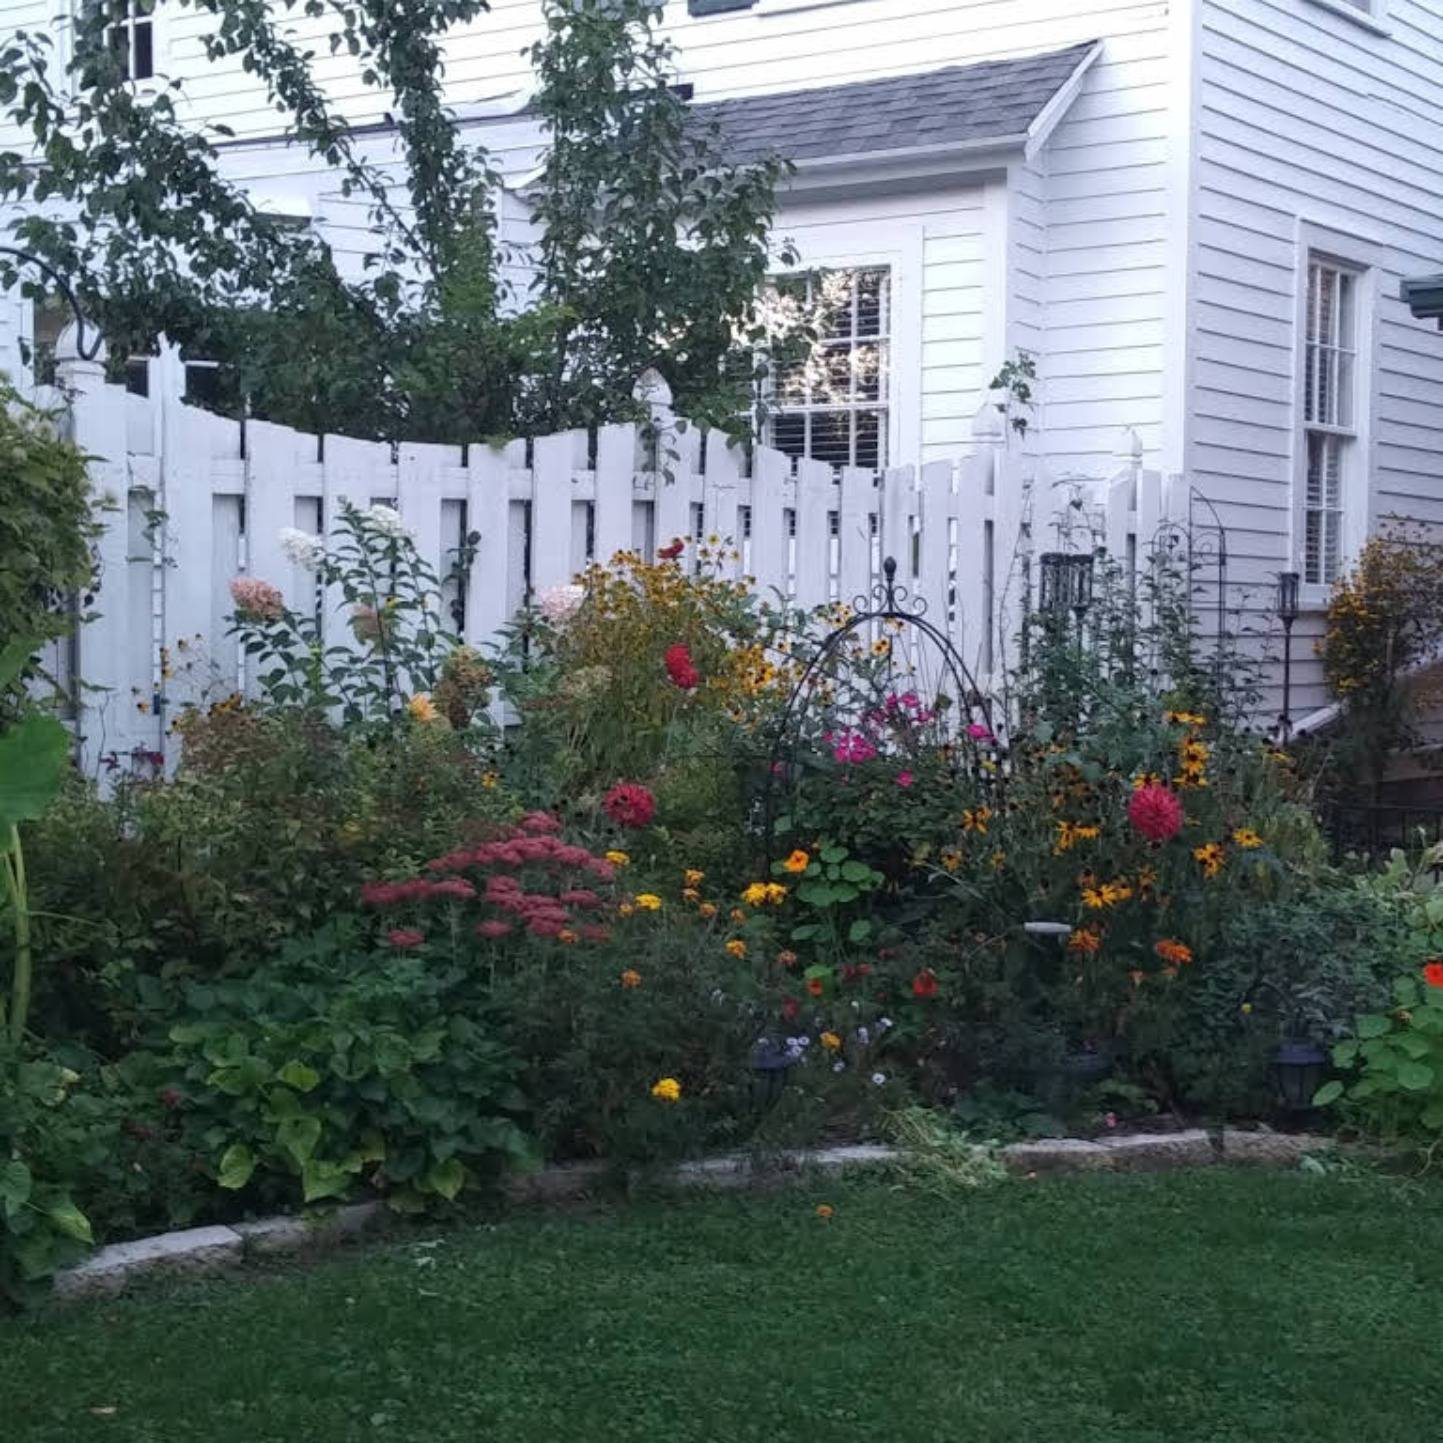 A close up of a flower garden at The Lilly Pad, Boerners' Guest House.